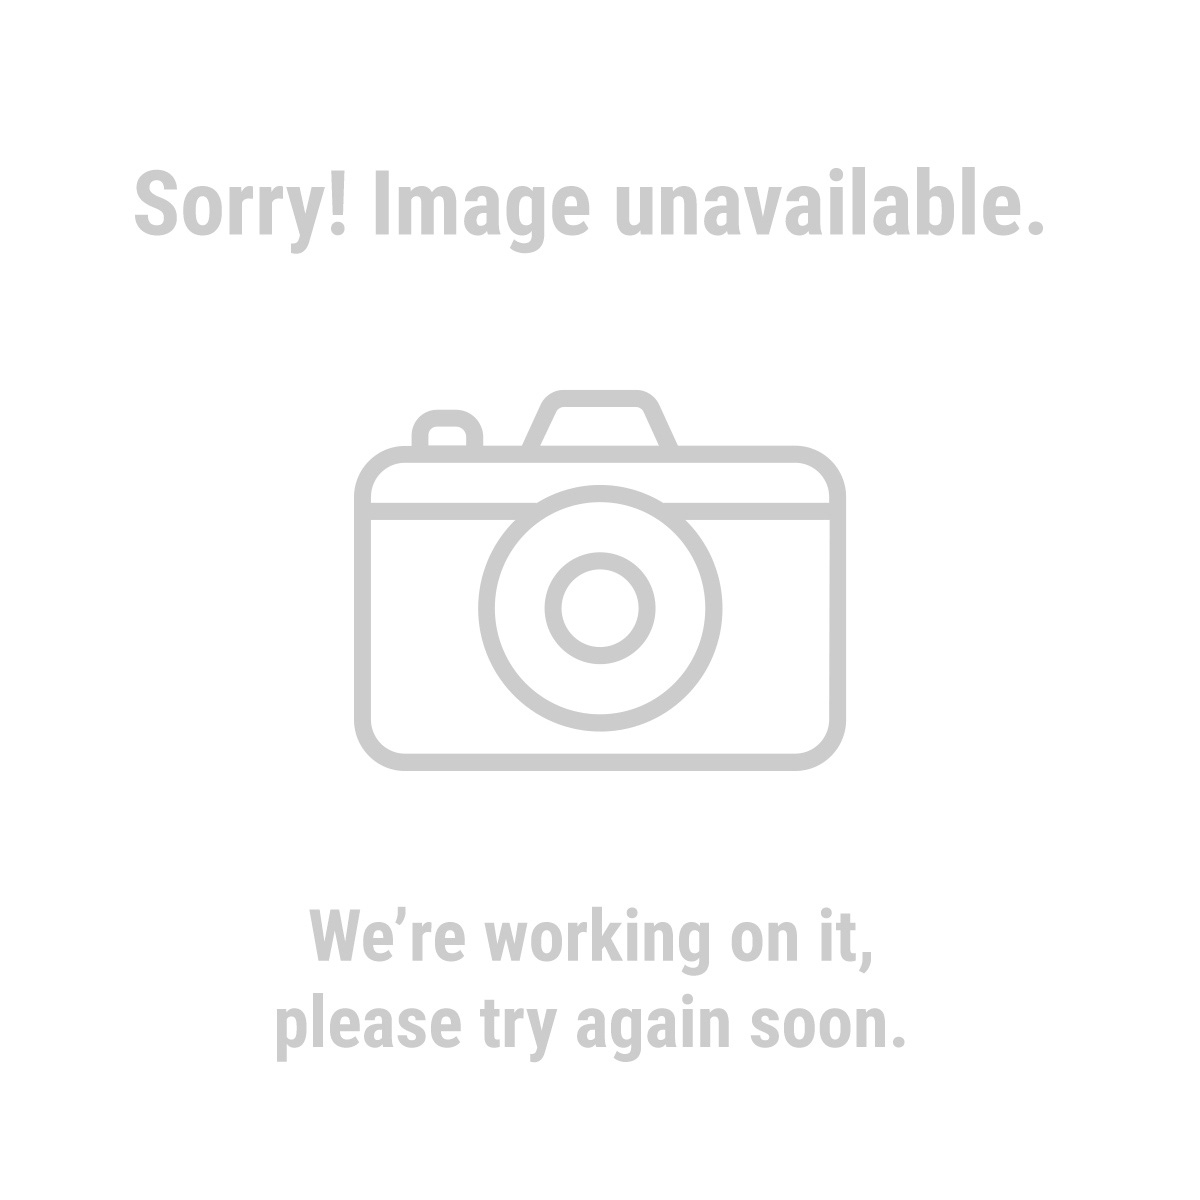 Central-Machinery 69446 350 Lb. Capacity Folding Sawhorse